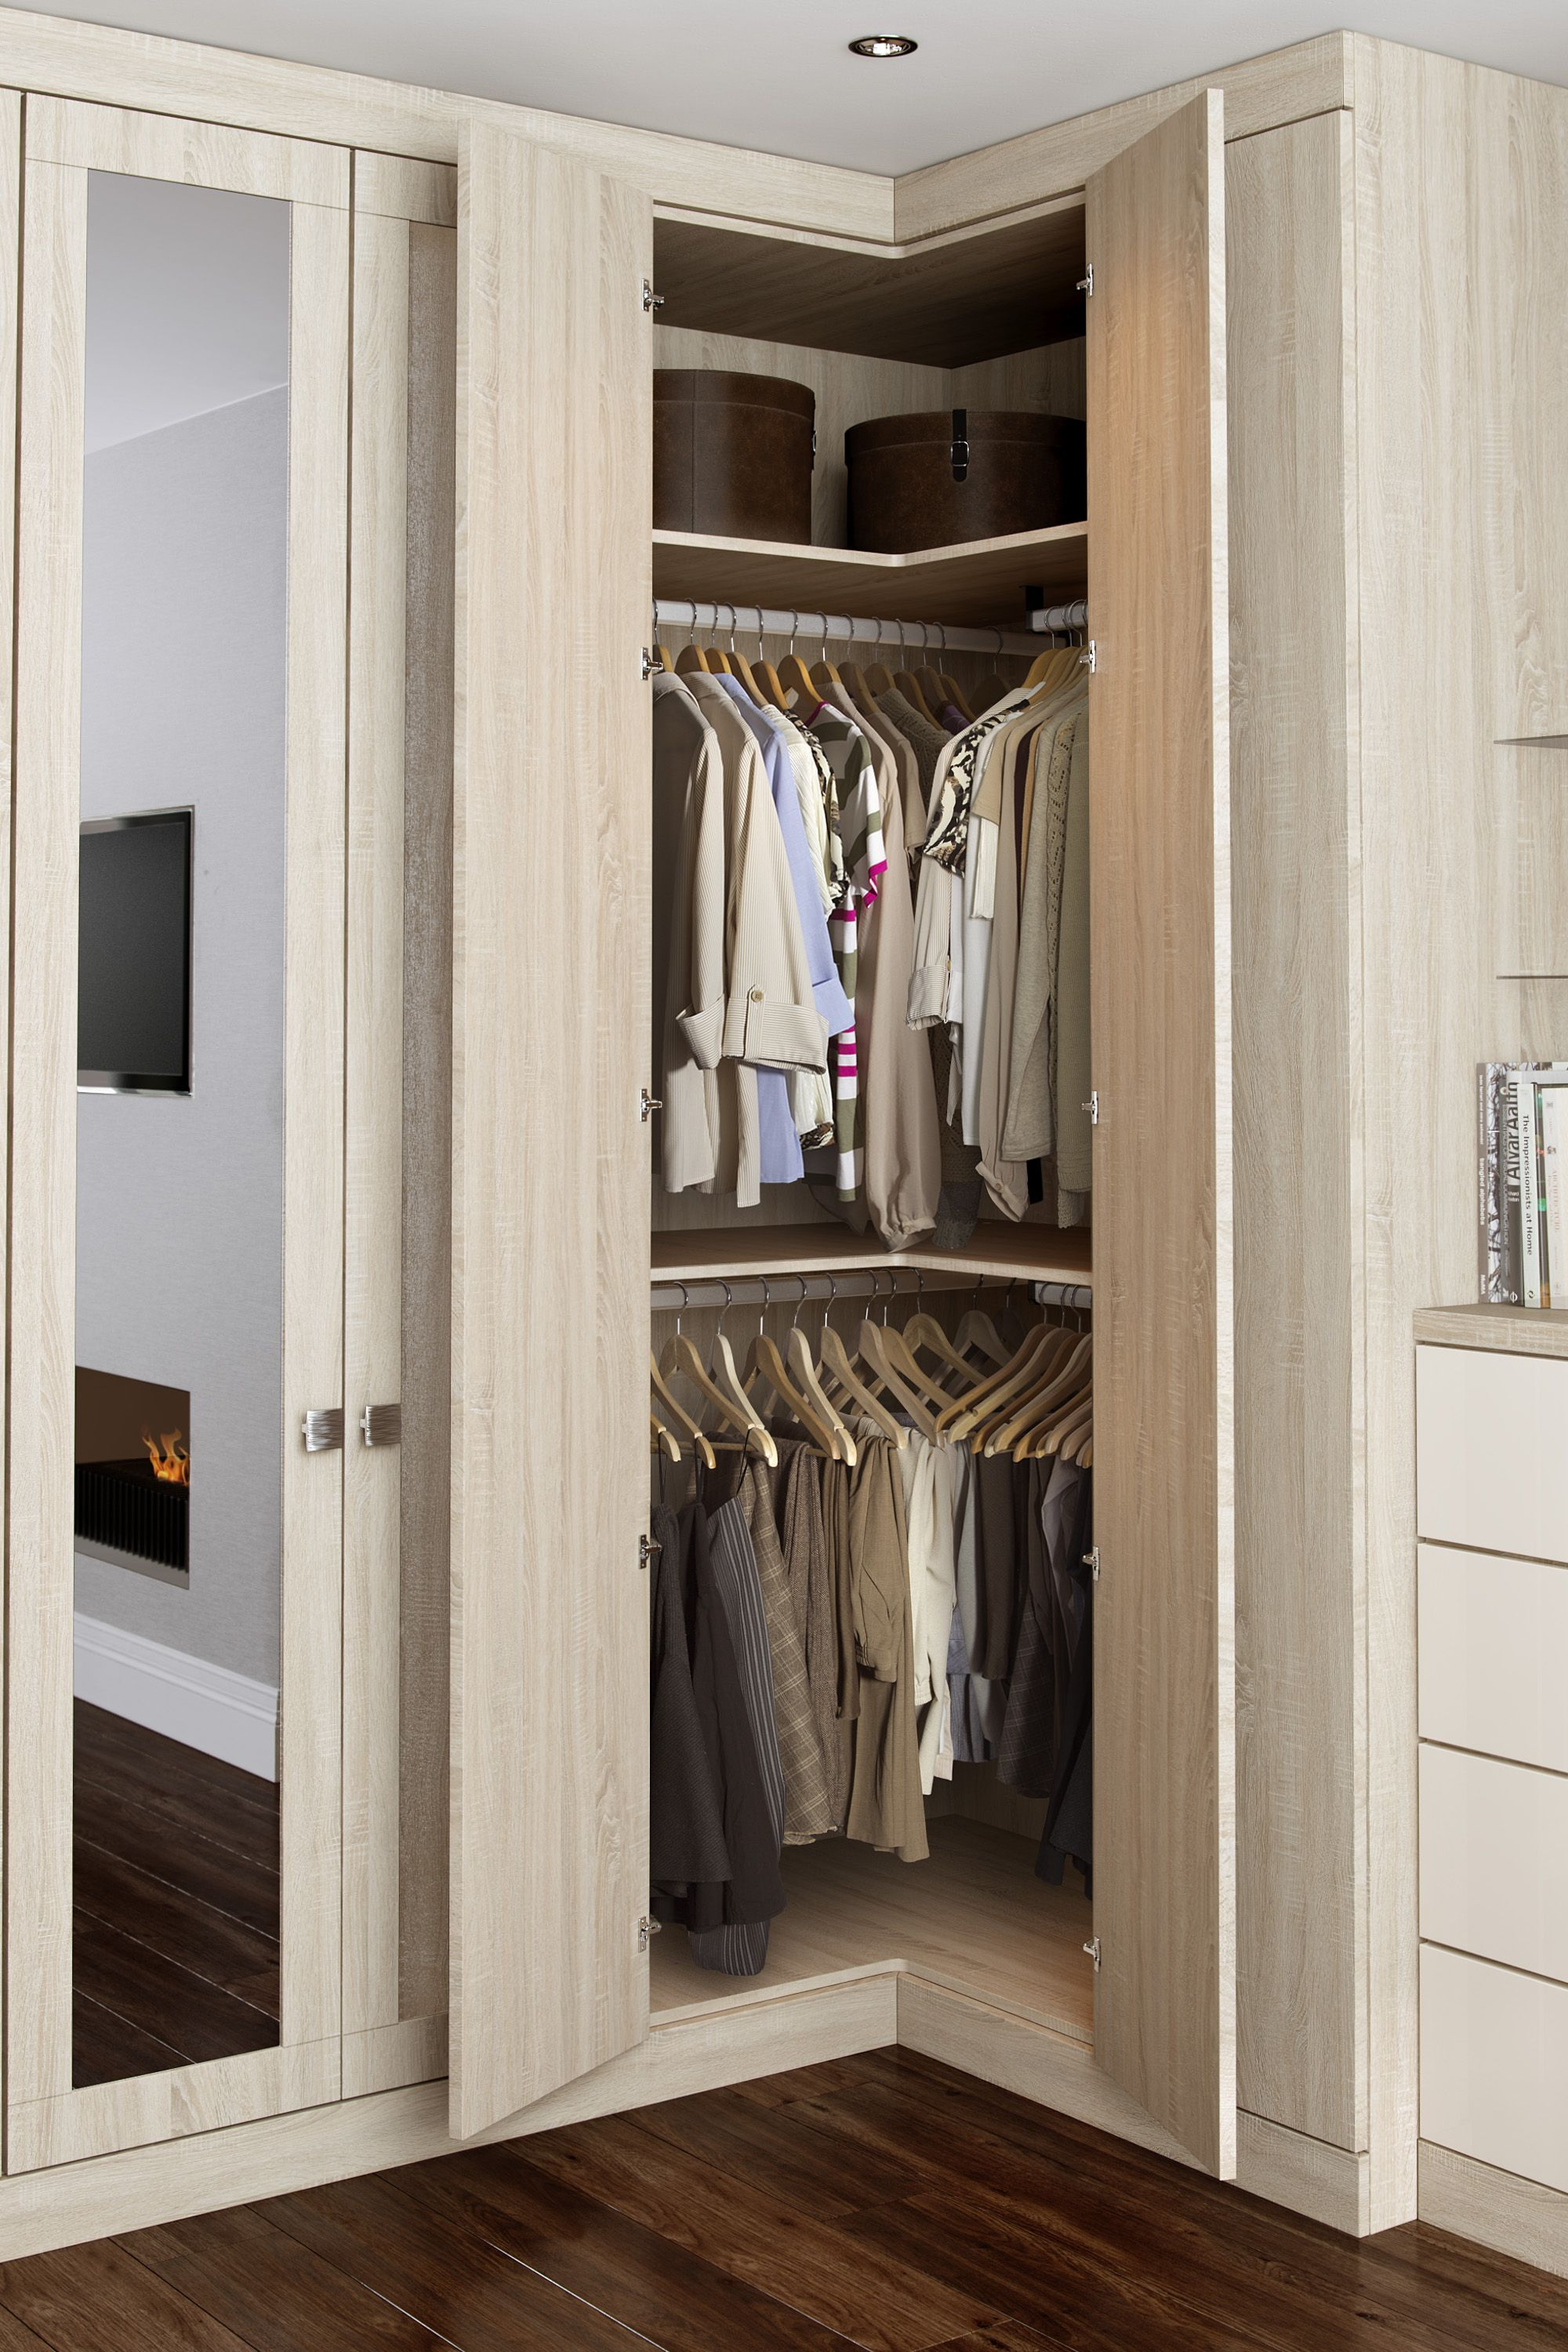 ideas ikea wardrobe organizer free of wood image solid closets custom white storage closet target stunning drawers size diy full